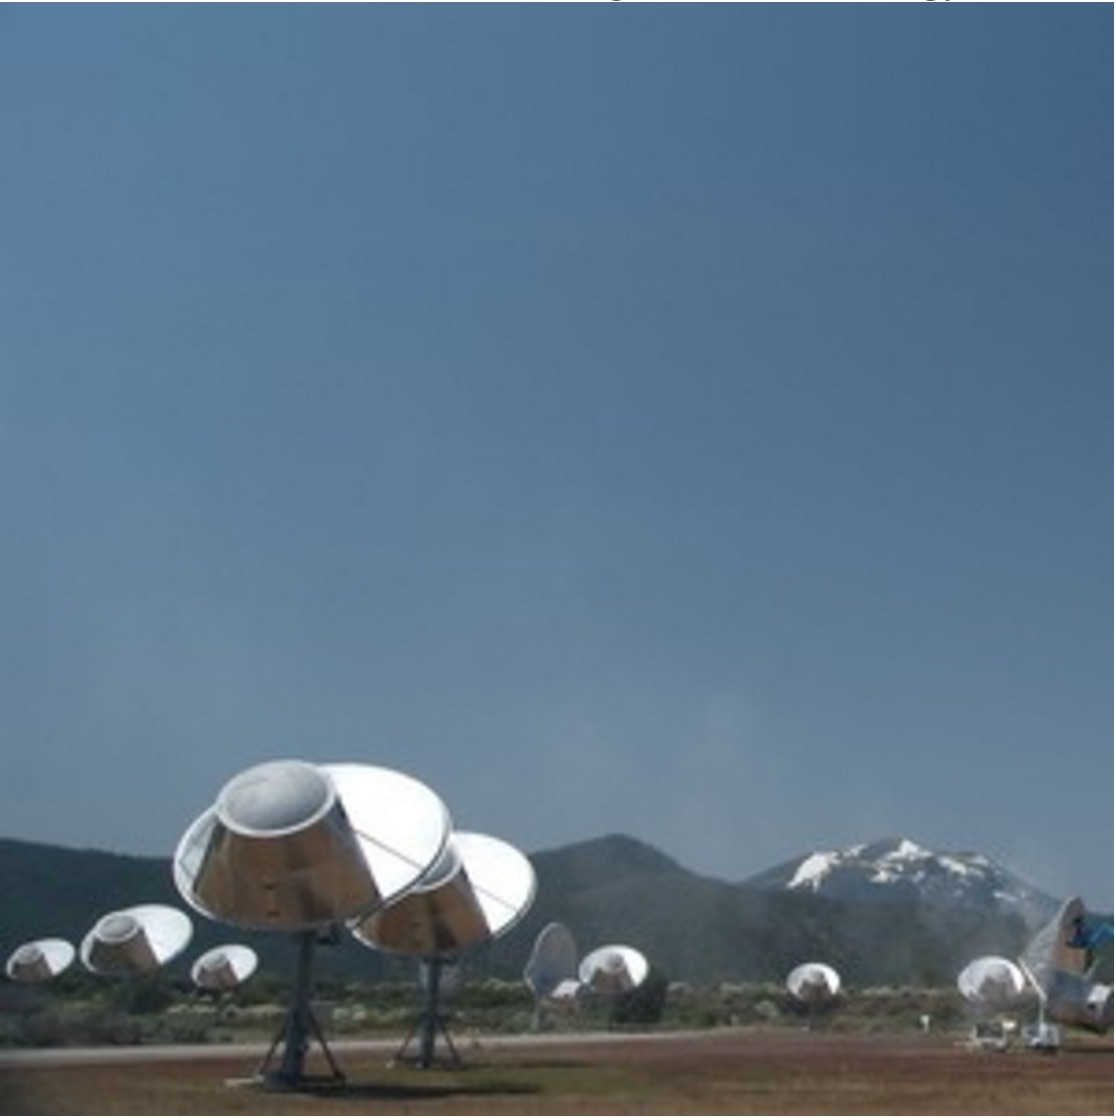 Seti Institute's Allen Telescope Array in California